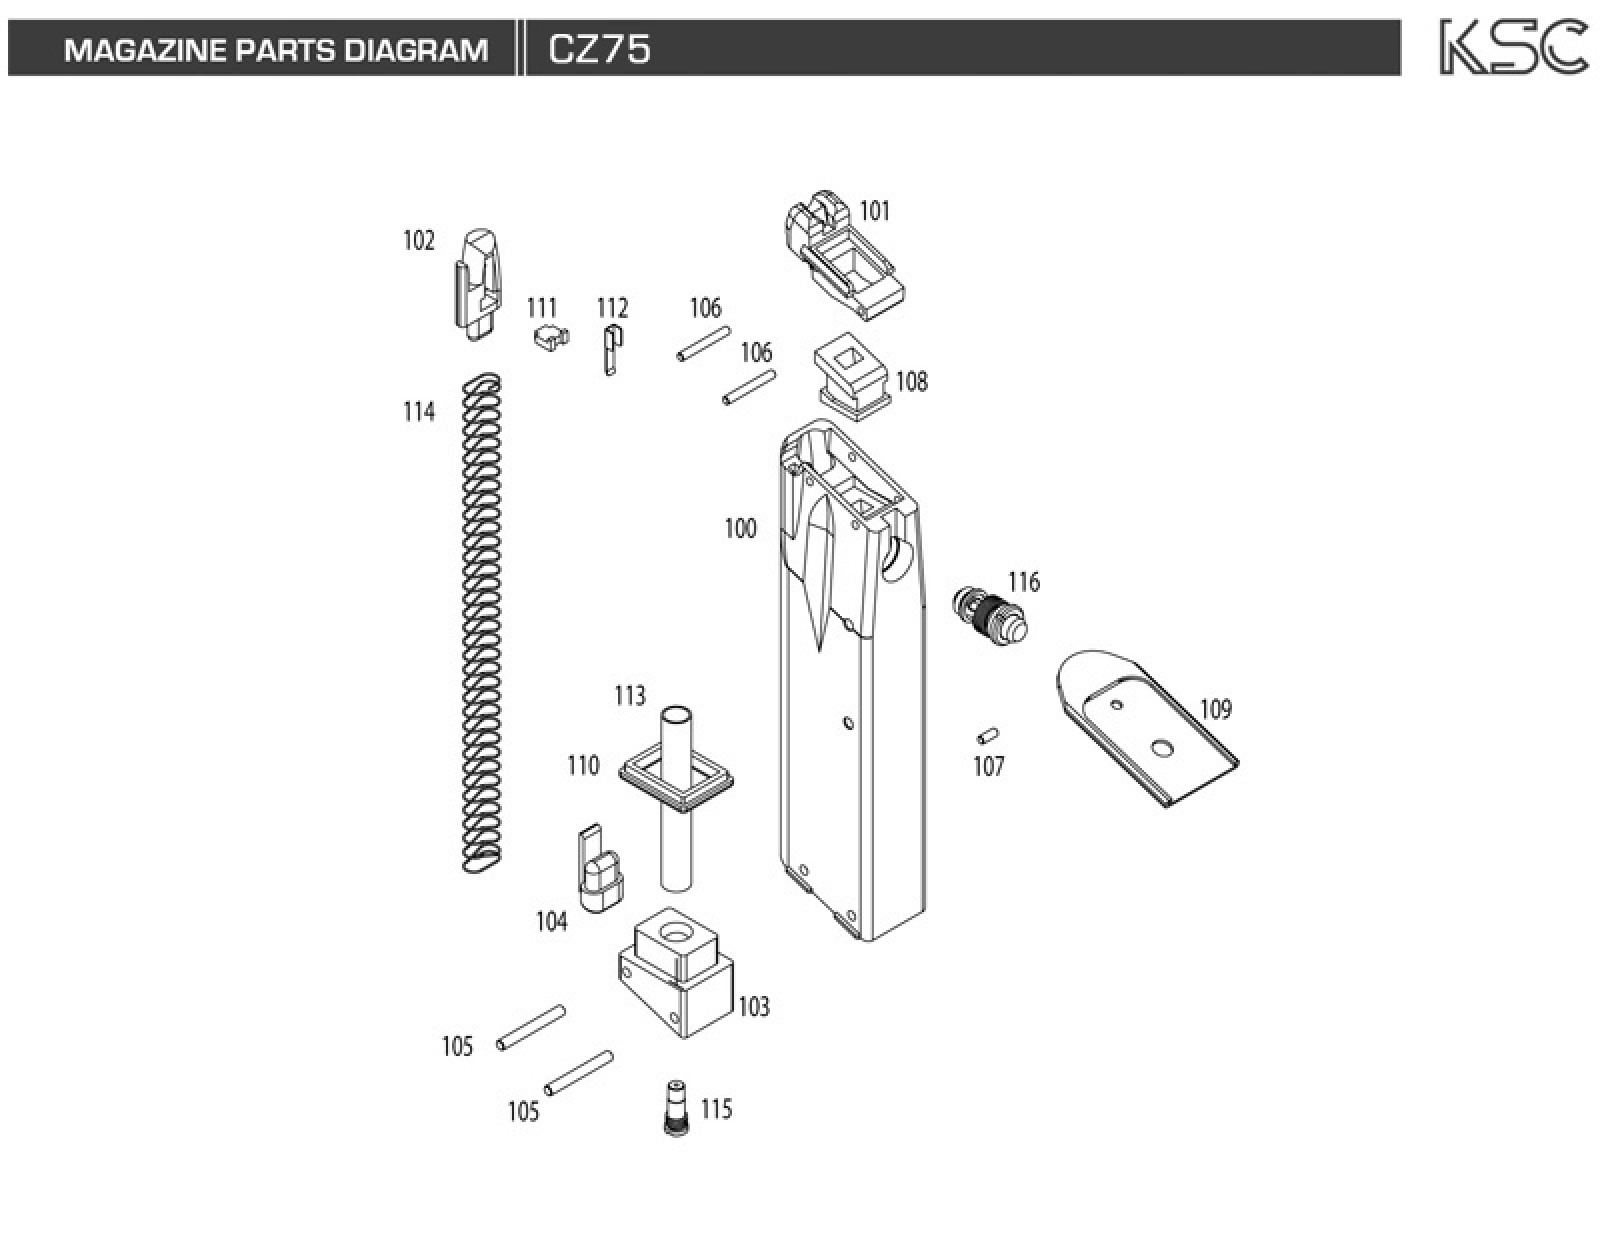 Disassembly diy my airsoft gun and other things diagram part for magazine diagram ccuart Images